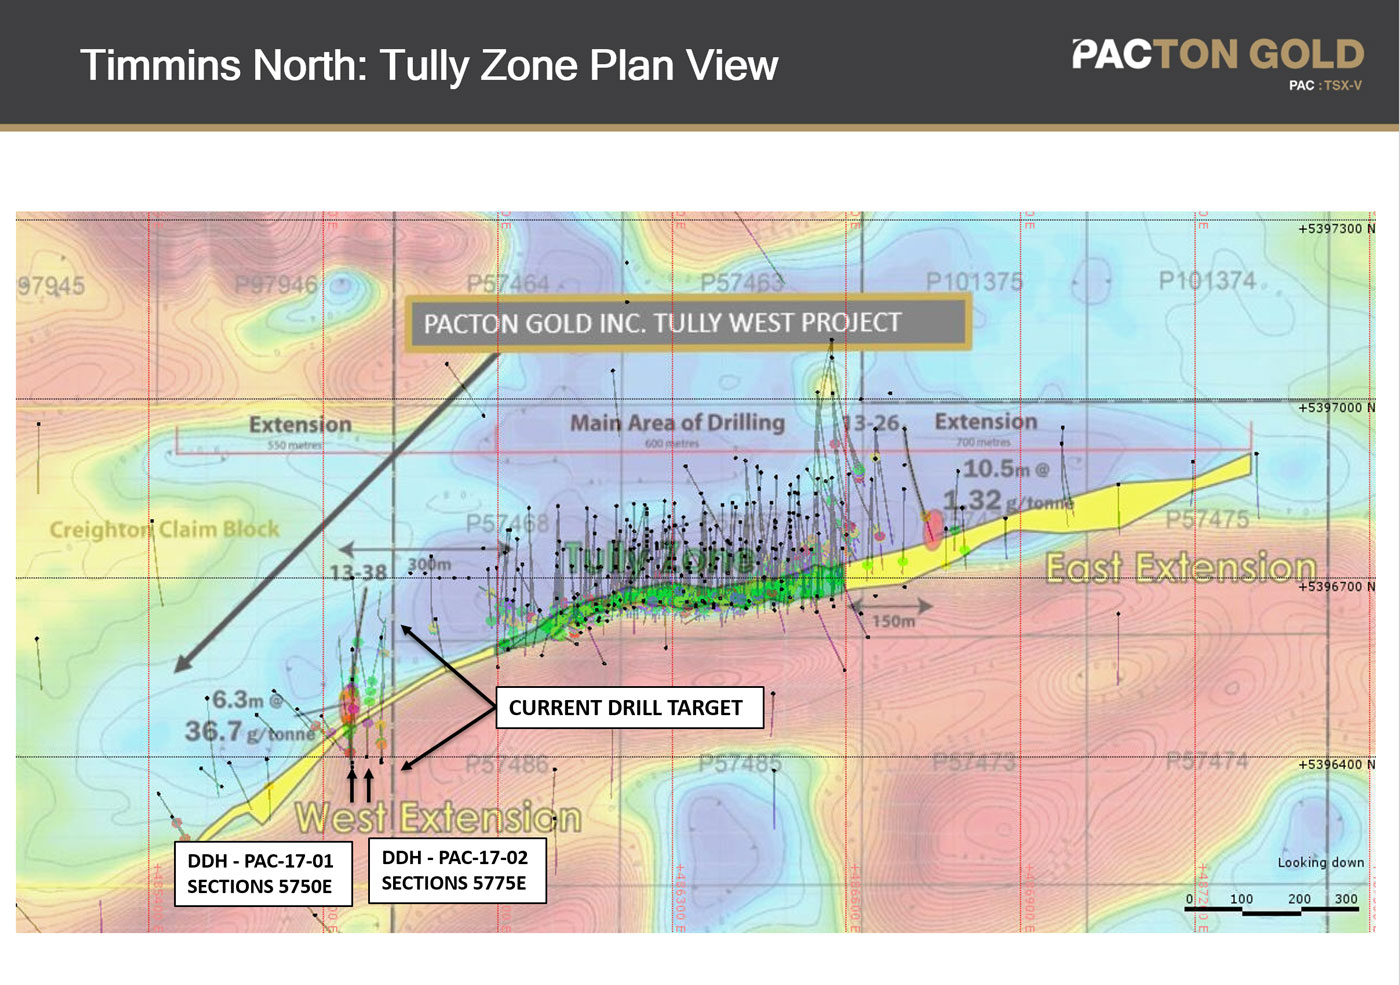 Tully zone drilling